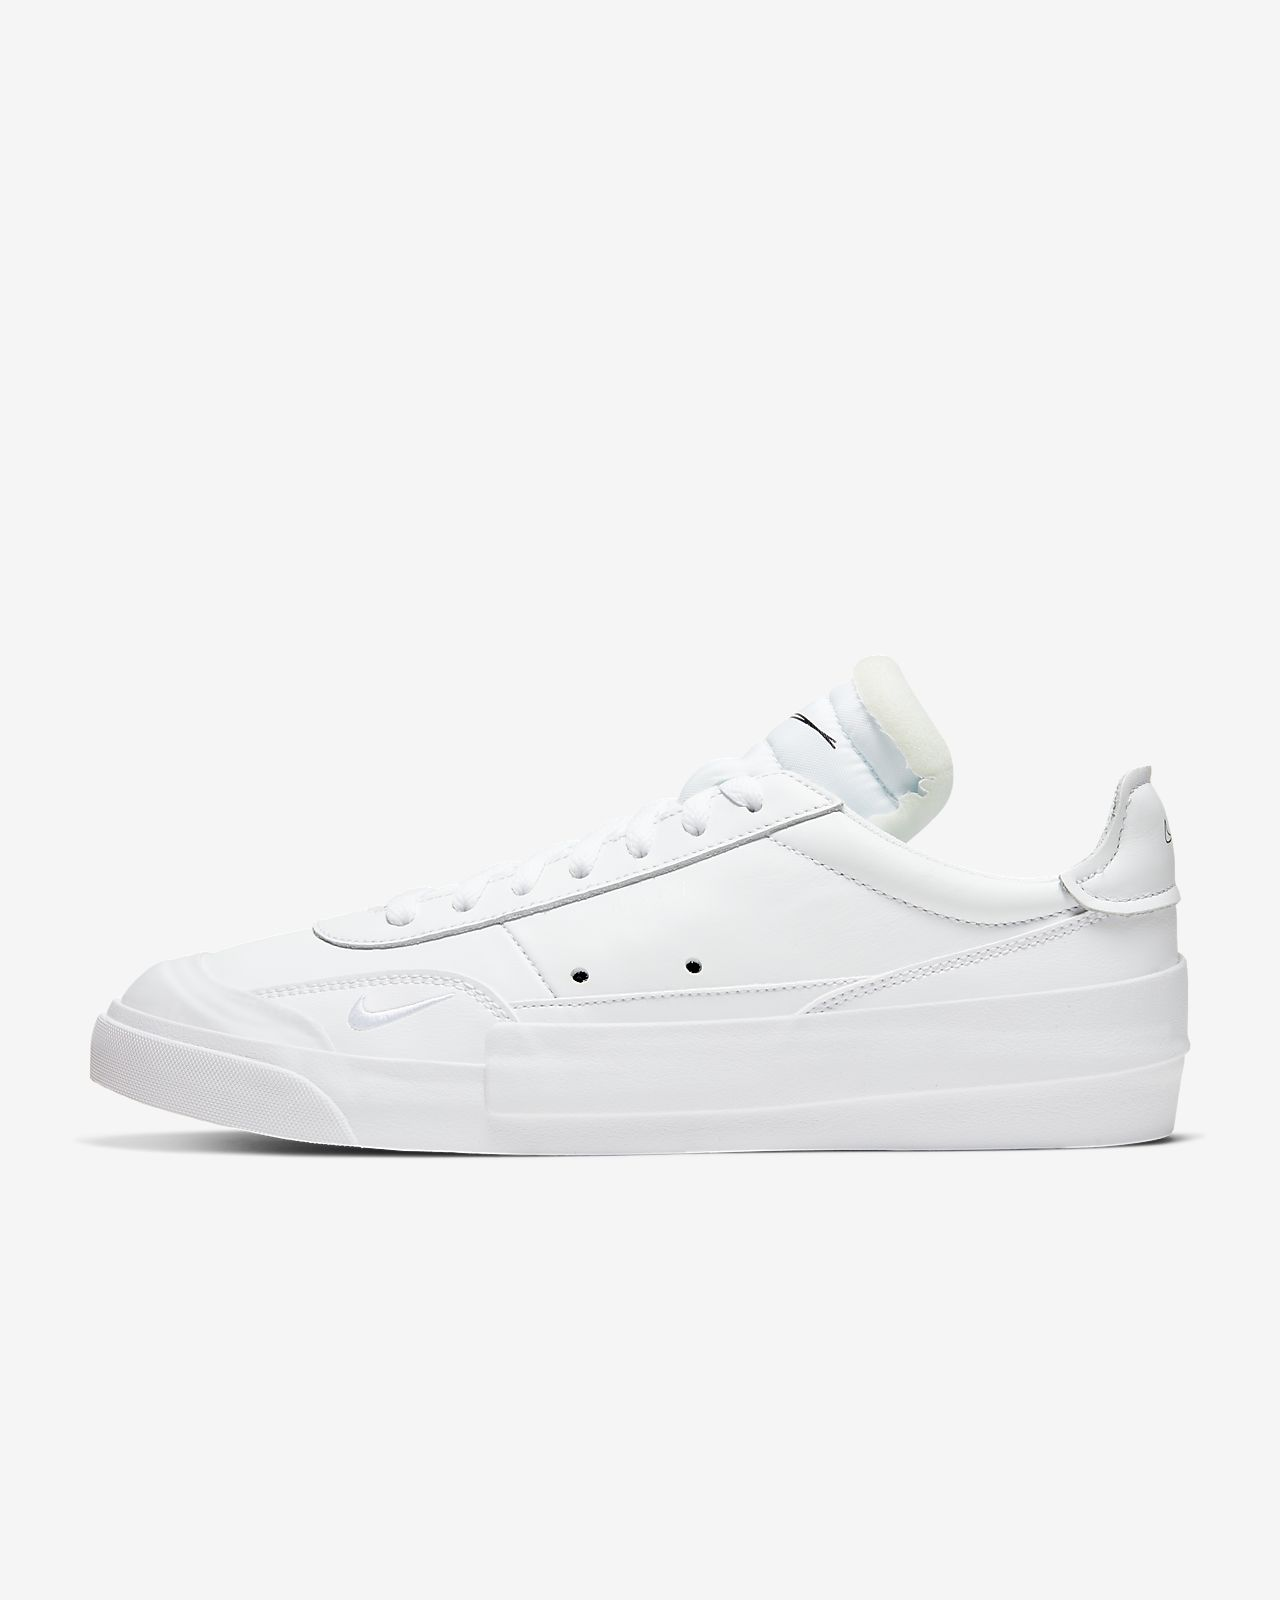 Nike Drop-Type Premium Men's Shoe